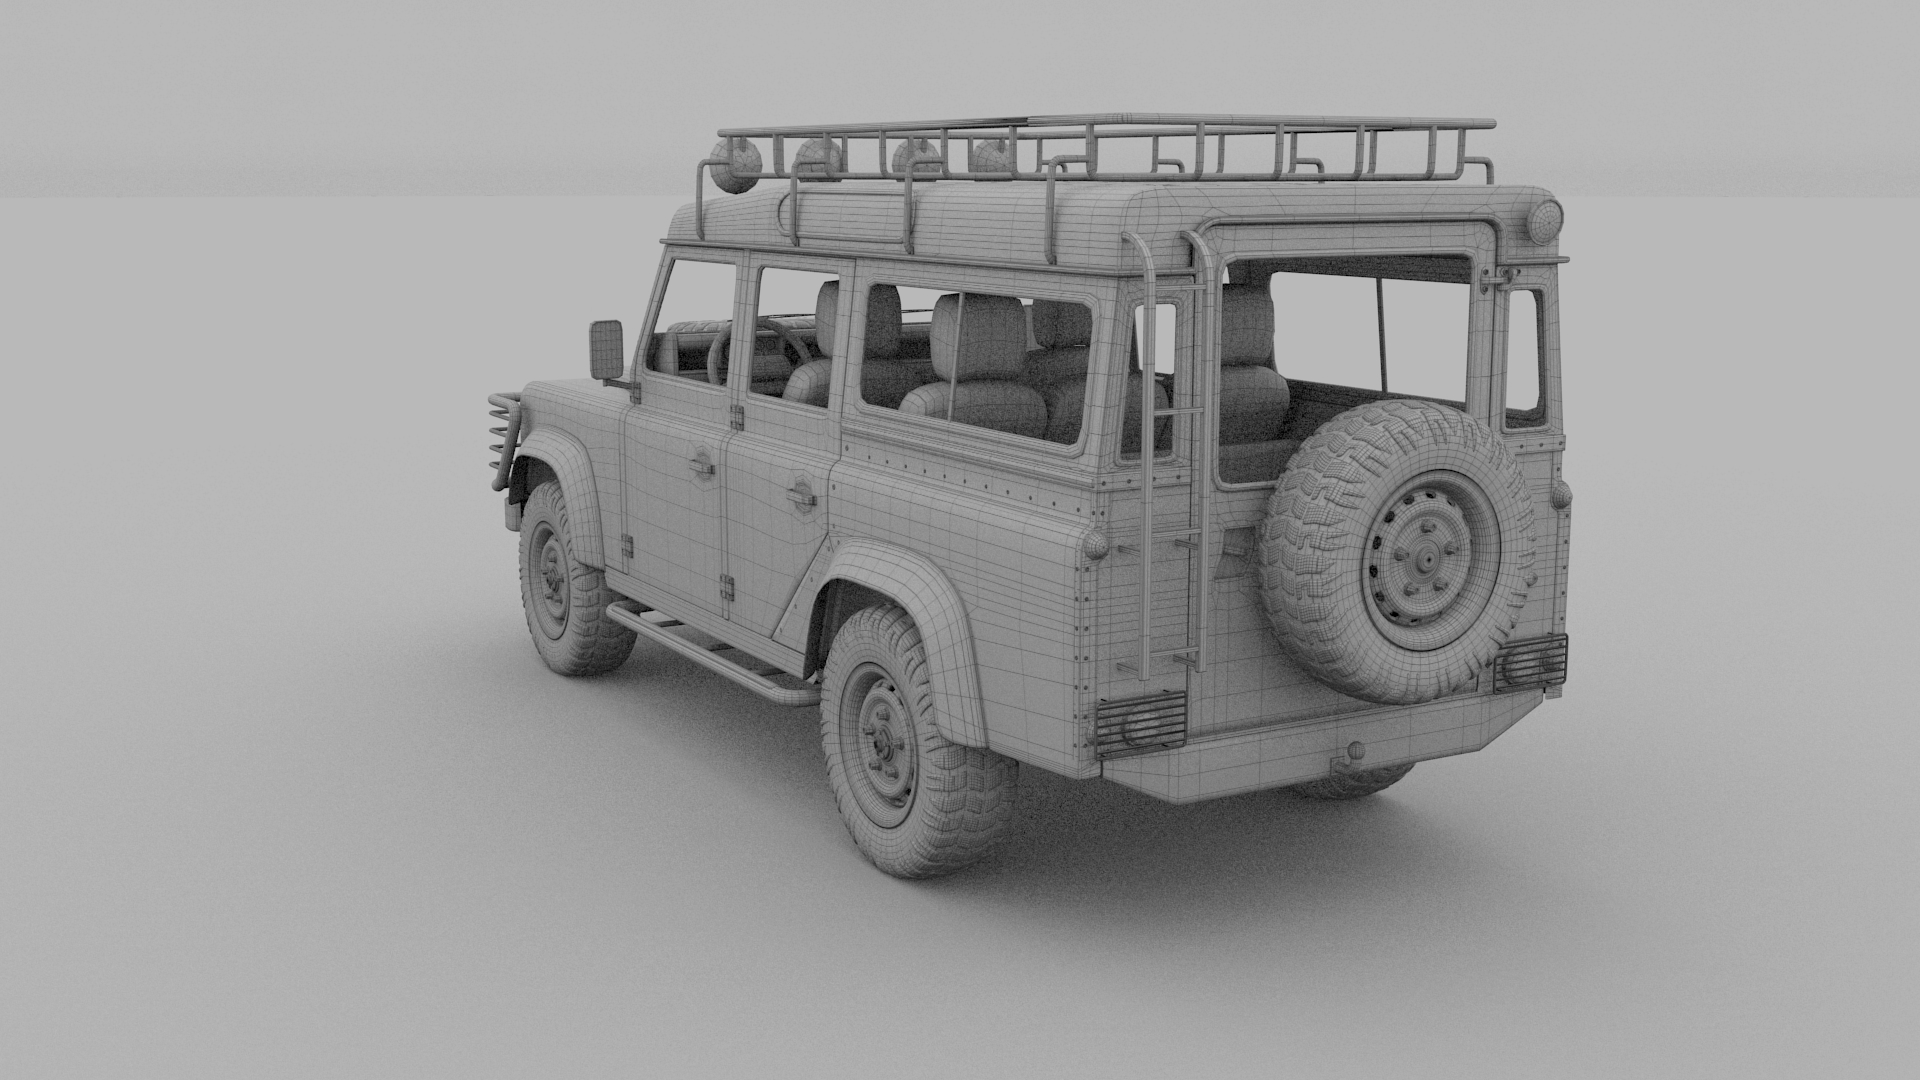 Land rover defender 110 station wagon w interior hdri by for Interior land rover defender